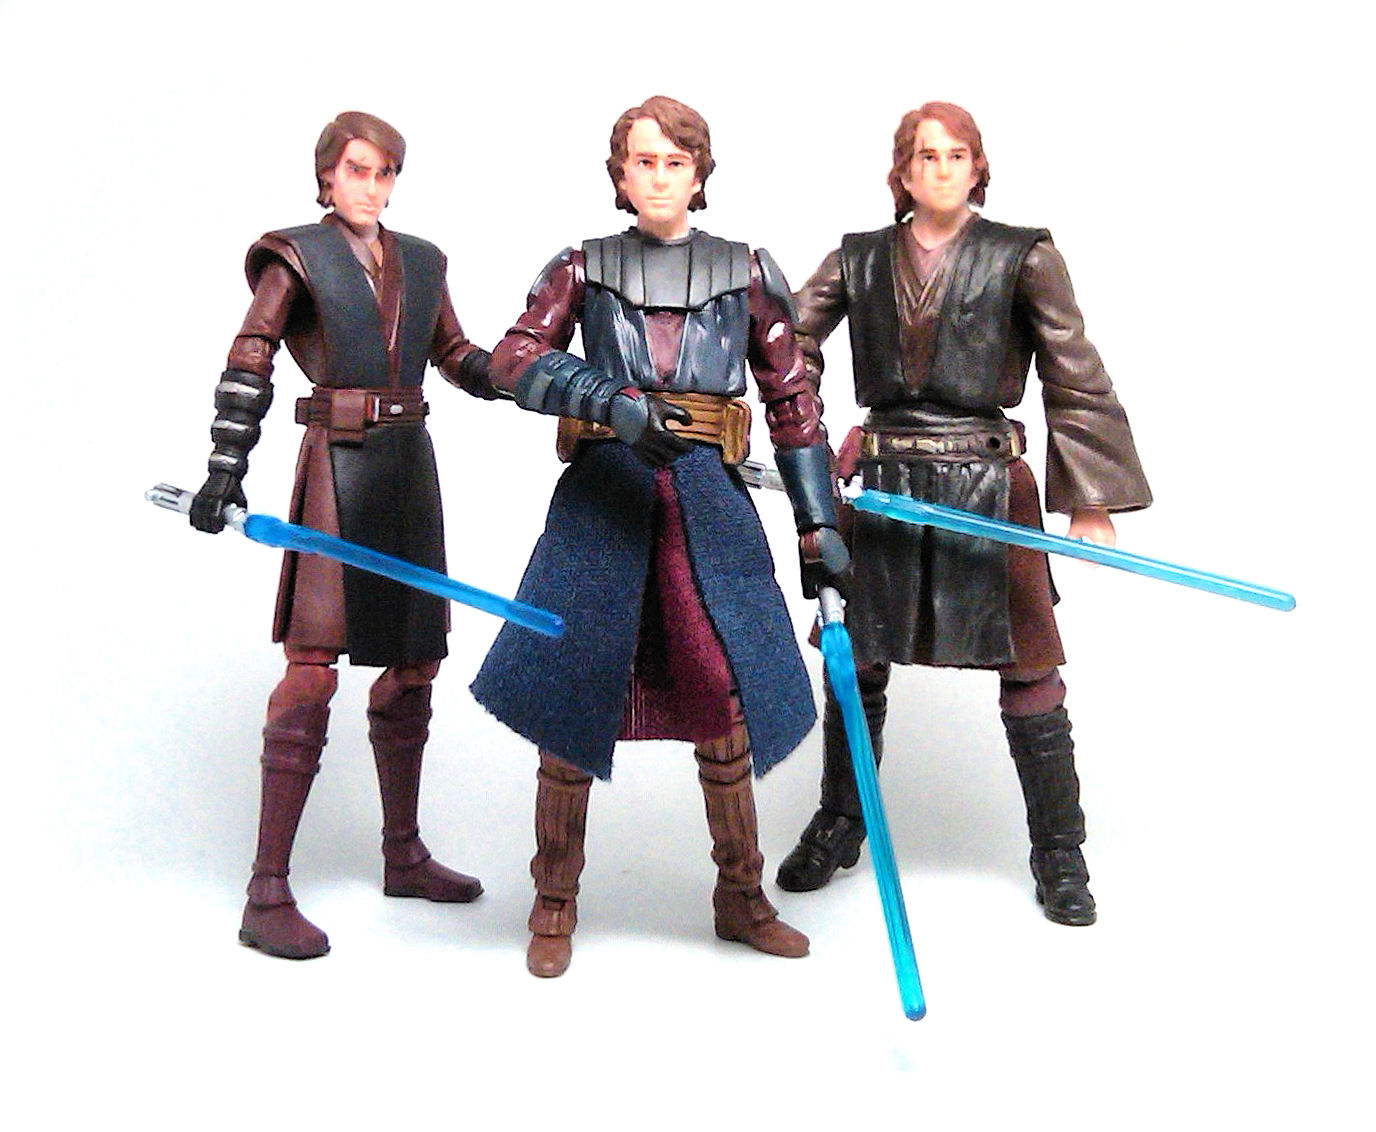 Anakin Skywalker Toys : Anakin skywalker vintage star wars action figure review